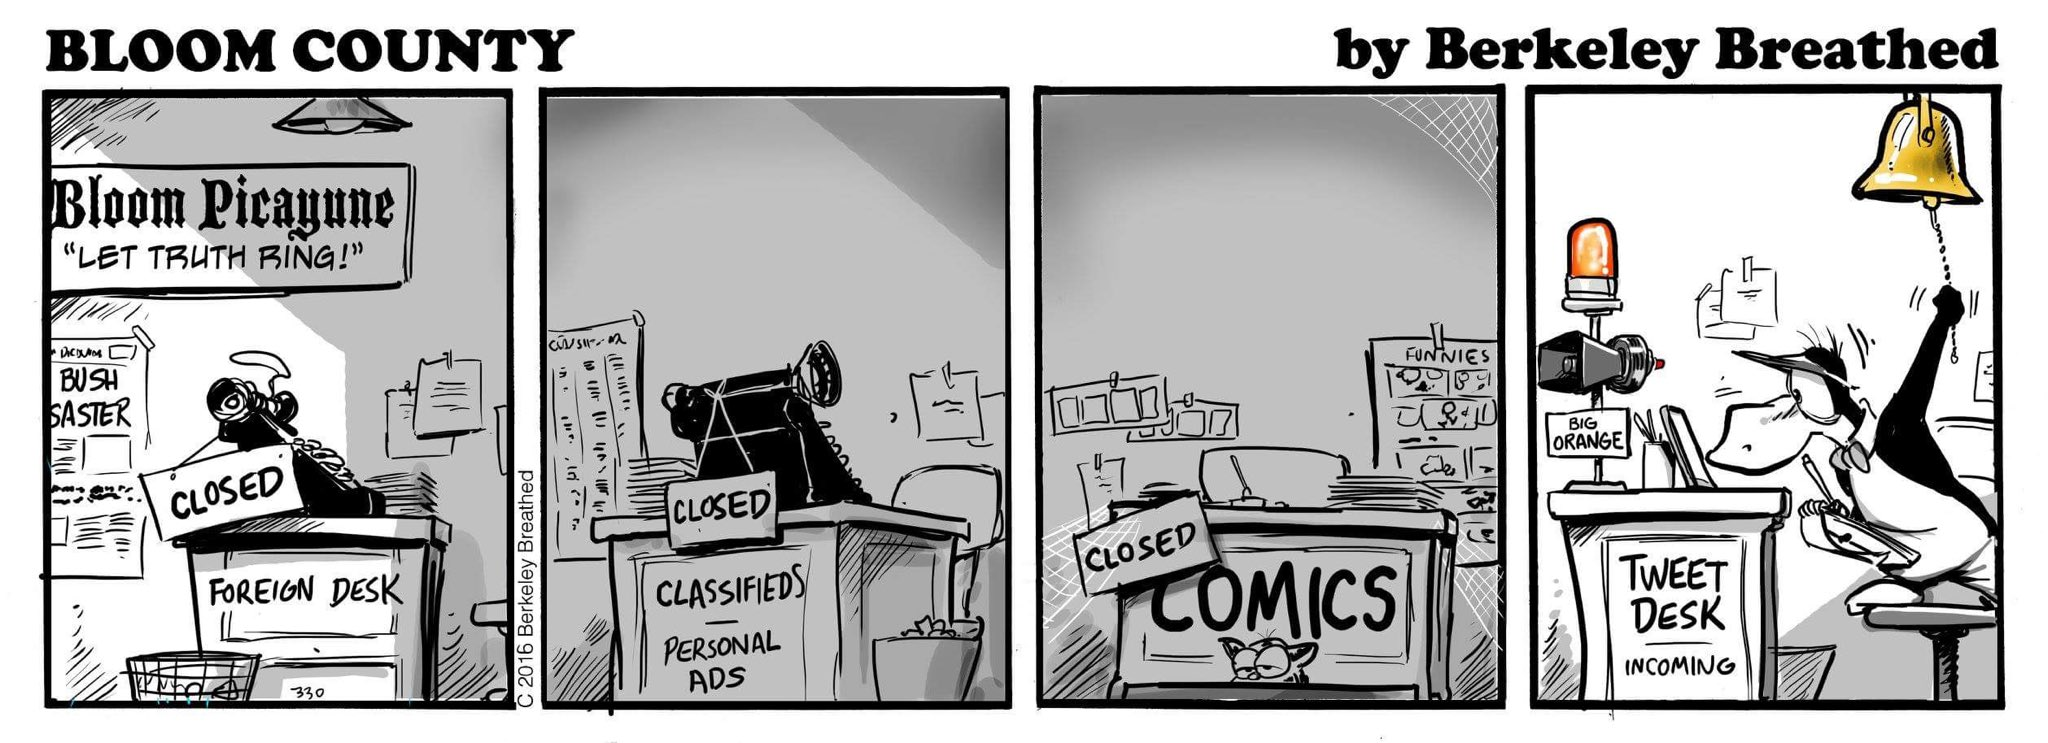 Scene at fictional newspaper Bloom Picayune. Foreign desk: Closed. Classifieds and personals: Closed, lights off. Comics: Closed and cobwebby. Tweet desk: Very much in use, occupied by a penguin named Opus ringing a bell as an orange light flashes and an alarm labeled 'Big Orange' blares. Bloom County © Berkeley Breathed. December 2, 2016